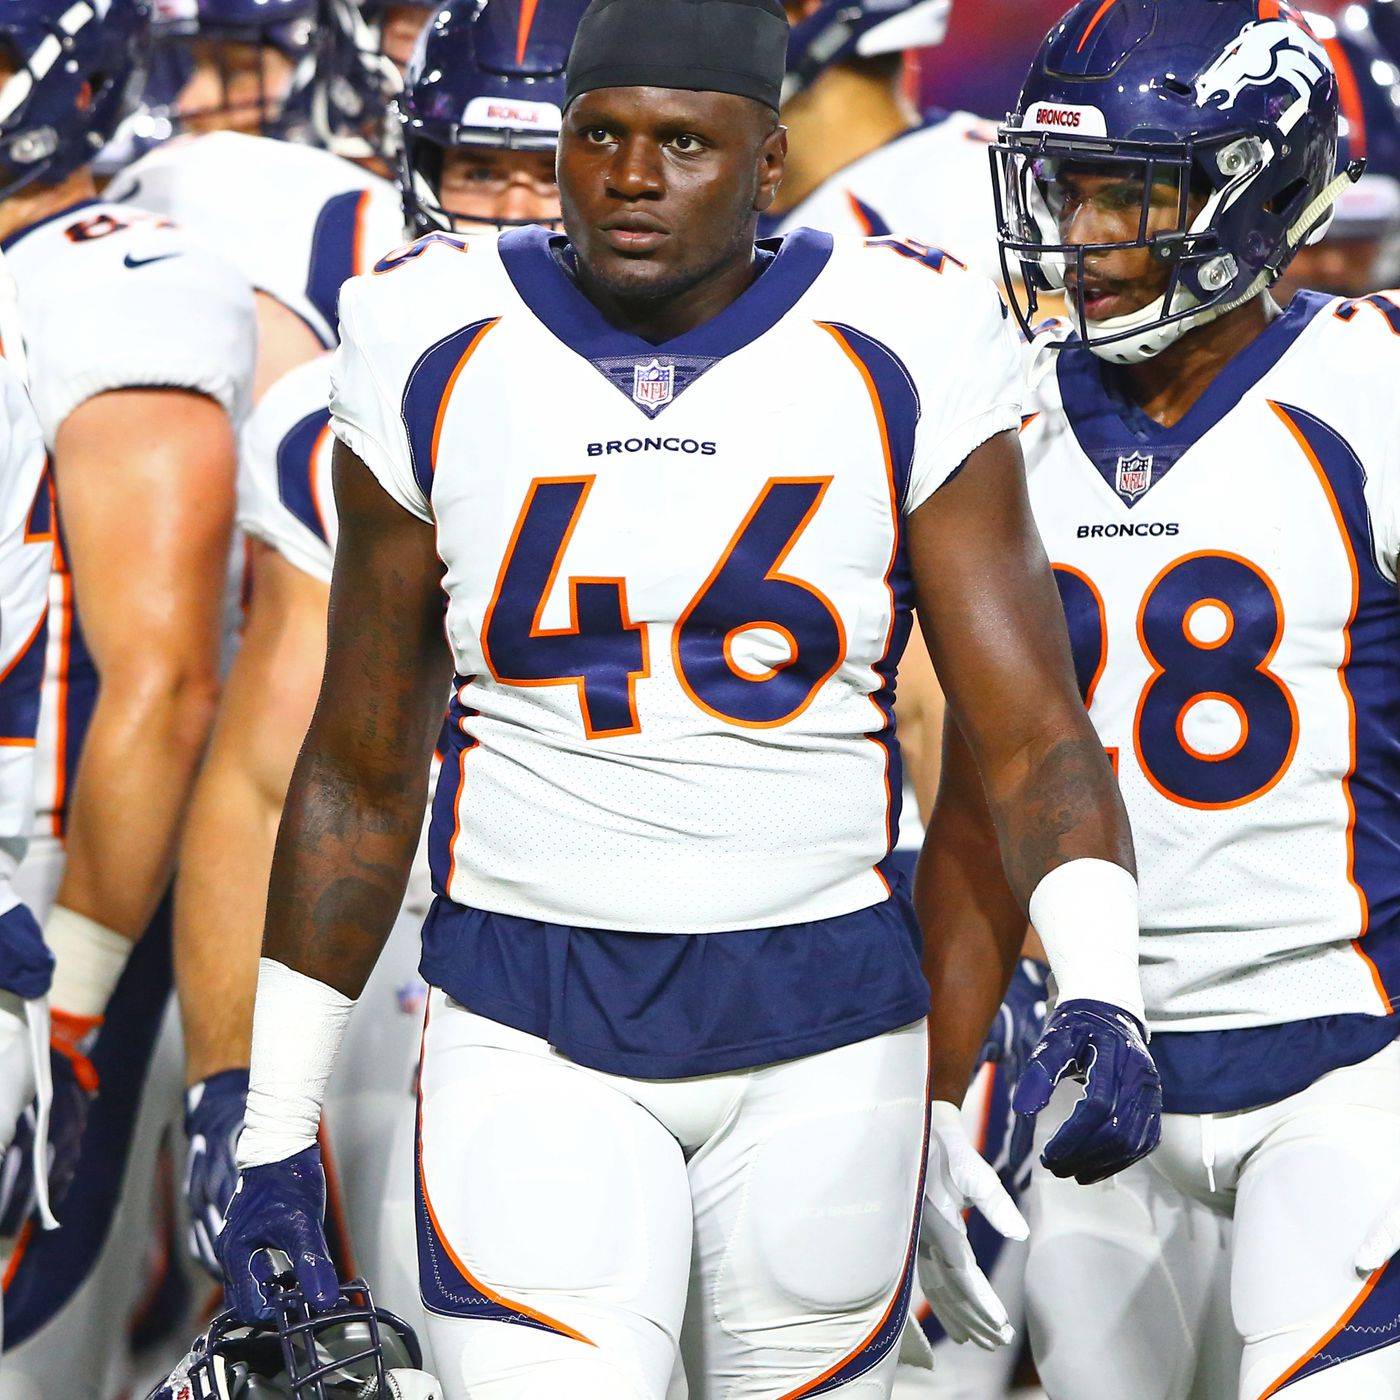 52d7ec4c Who are some young players that could improve under the Broncos new ...